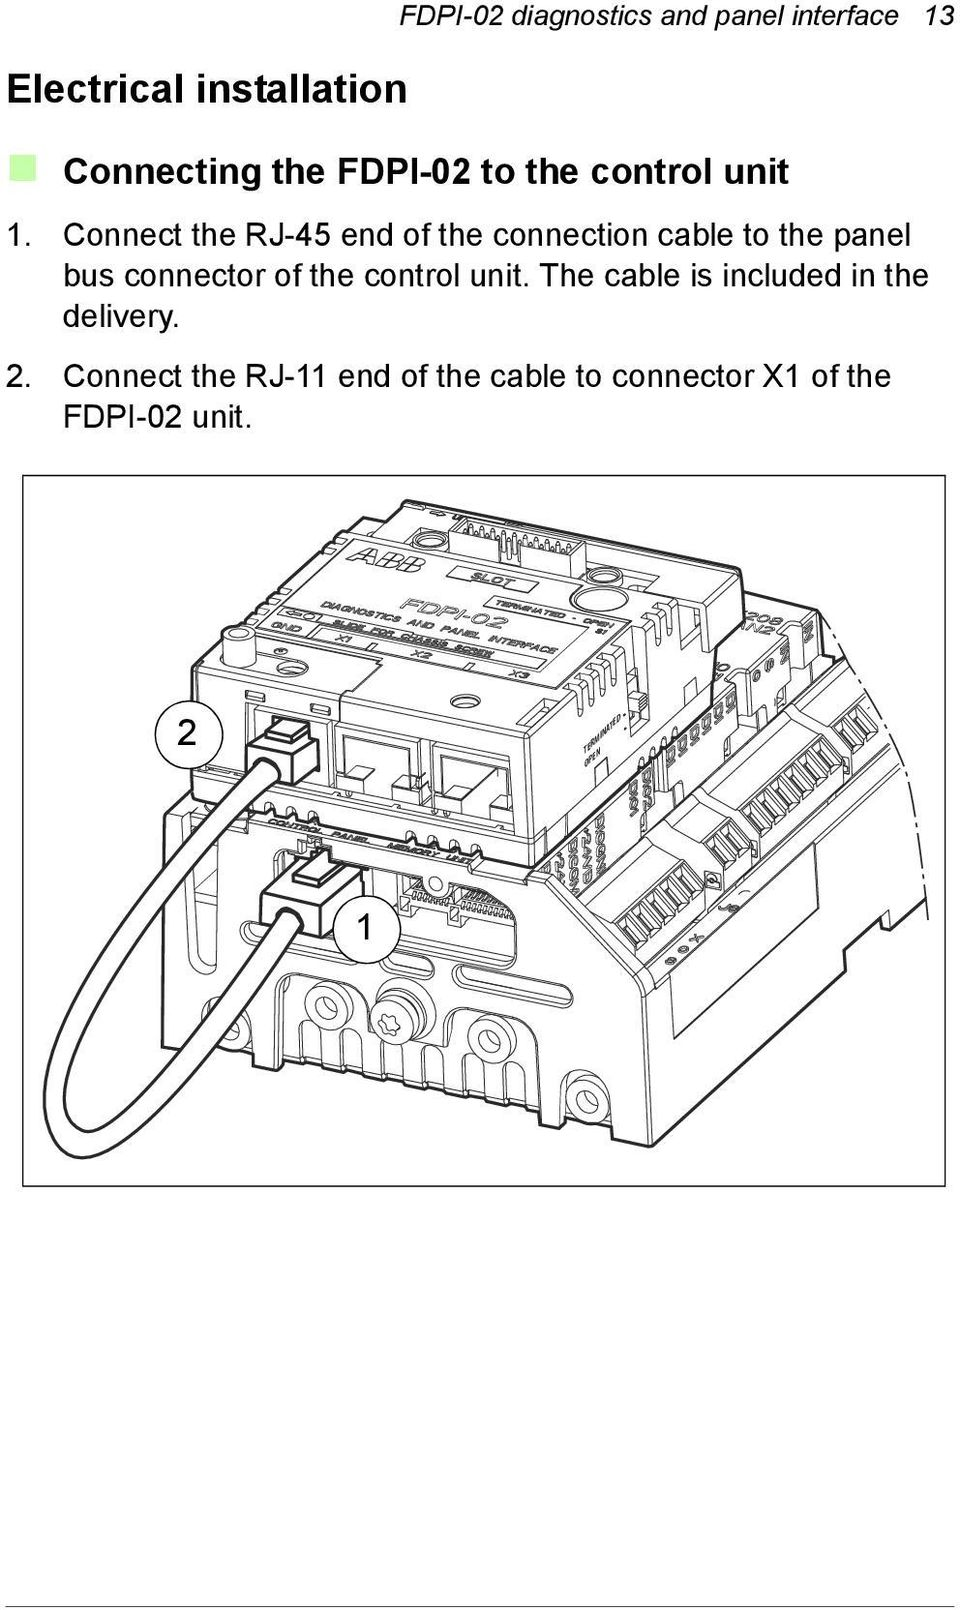 Connect the RJ-45 end of the connection cable to the panel bus connector of the